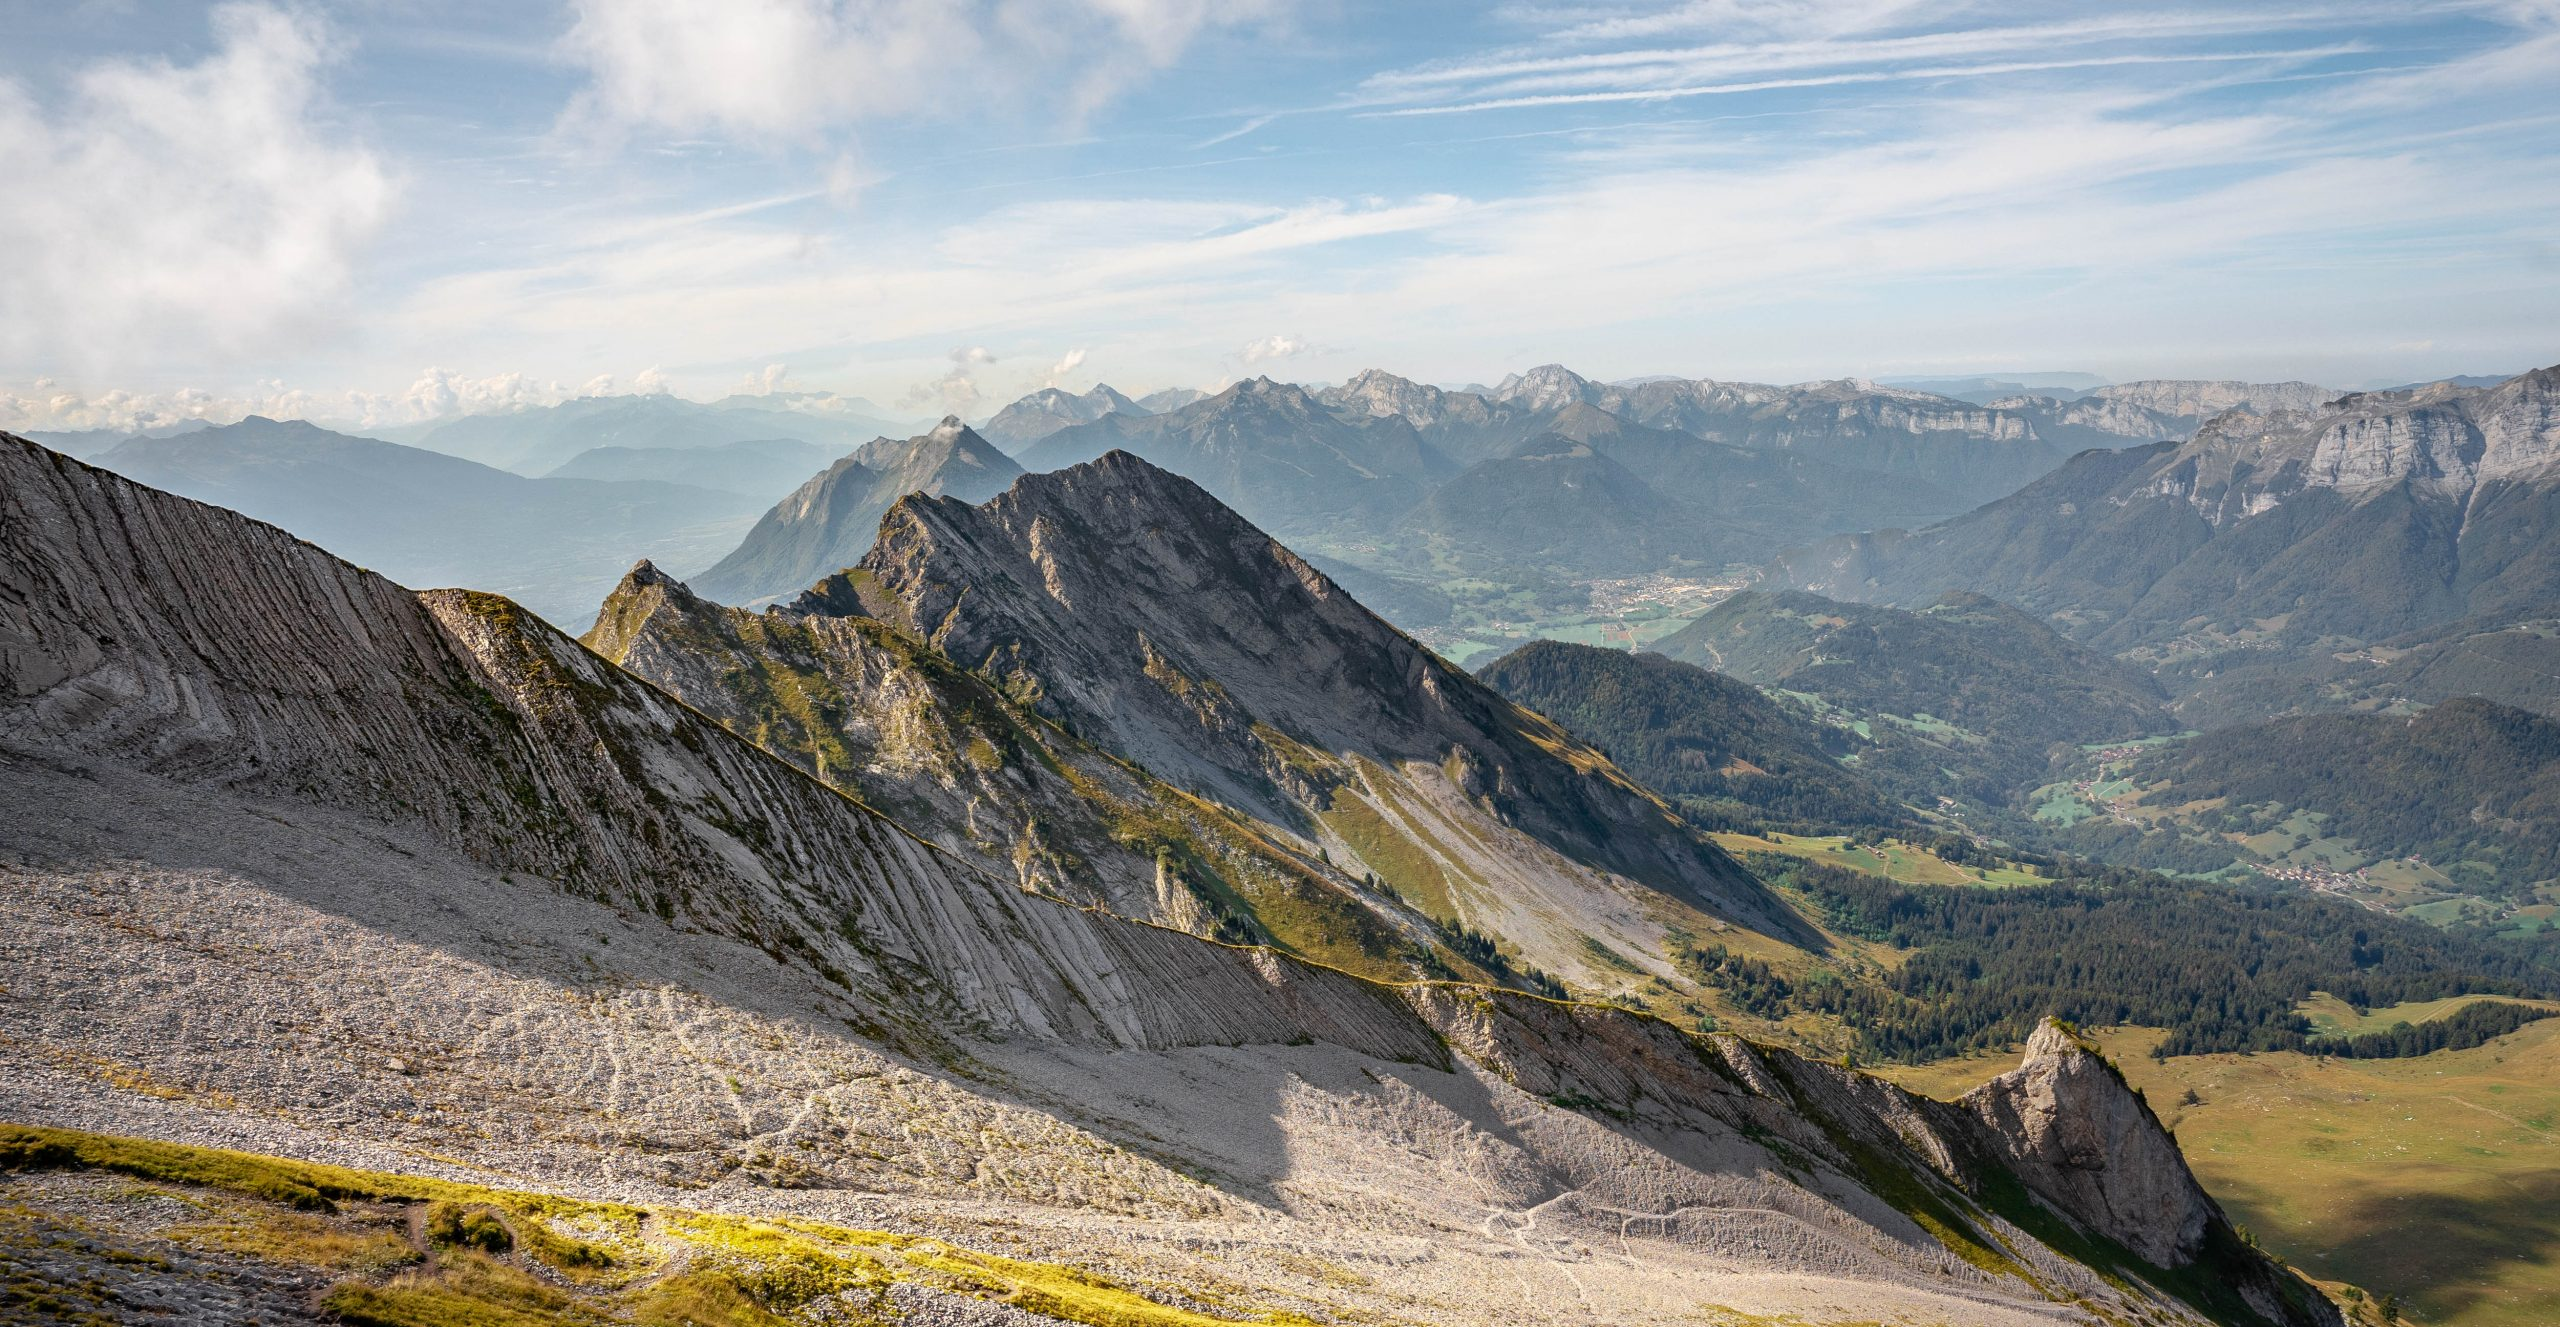 Annecy Mountains : Une terre d'aventure